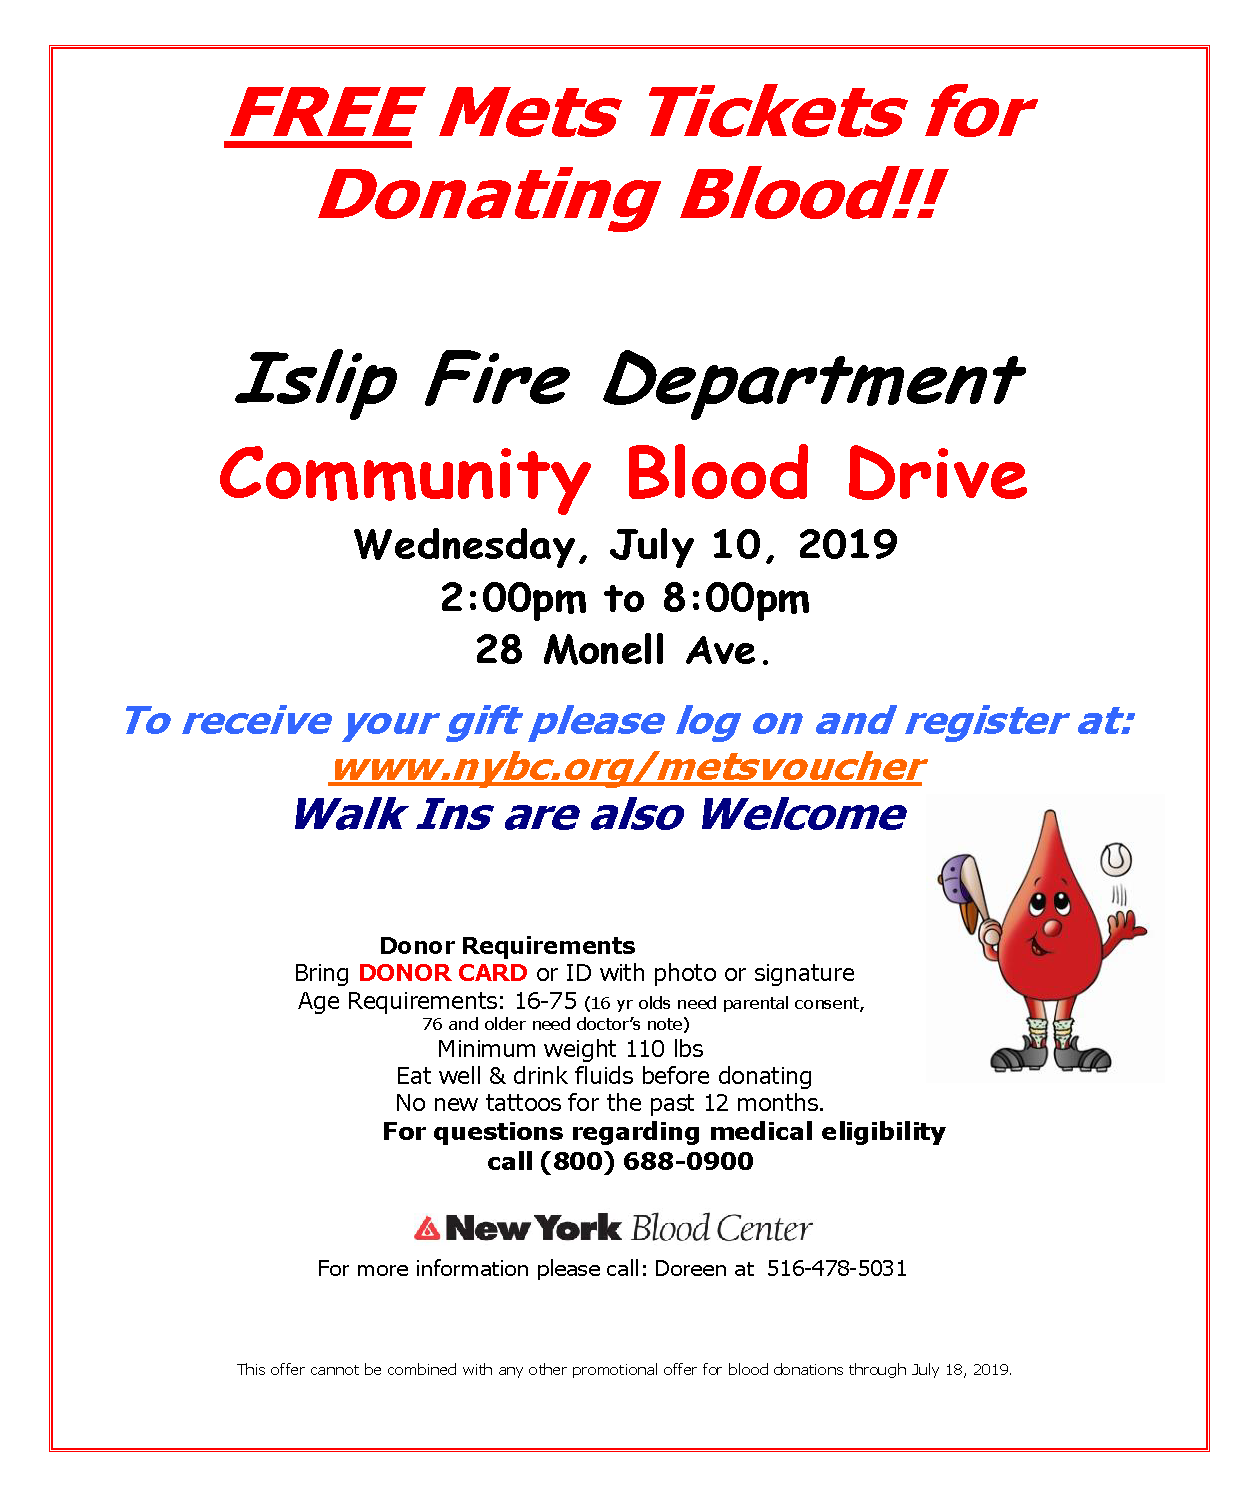 A flyer announcing free Mets tickets at the July 10th IFD Blood Drive, call 516-478-5031 for more information